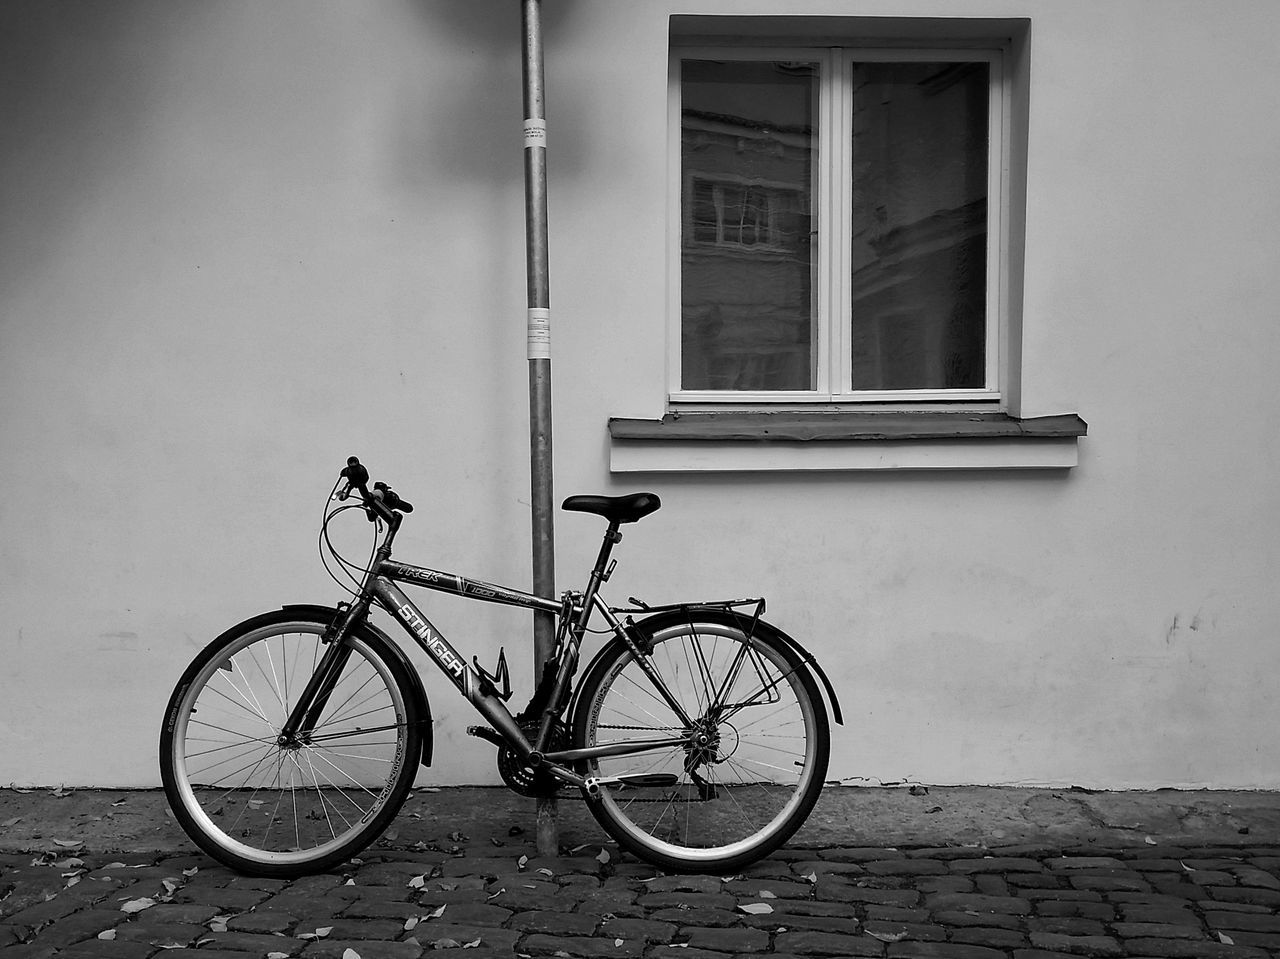 bicycle, transportation, mode of transport, land vehicle, stationary, building exterior, parking, outdoors, built structure, day, architecture, window, no people, bicycle rack